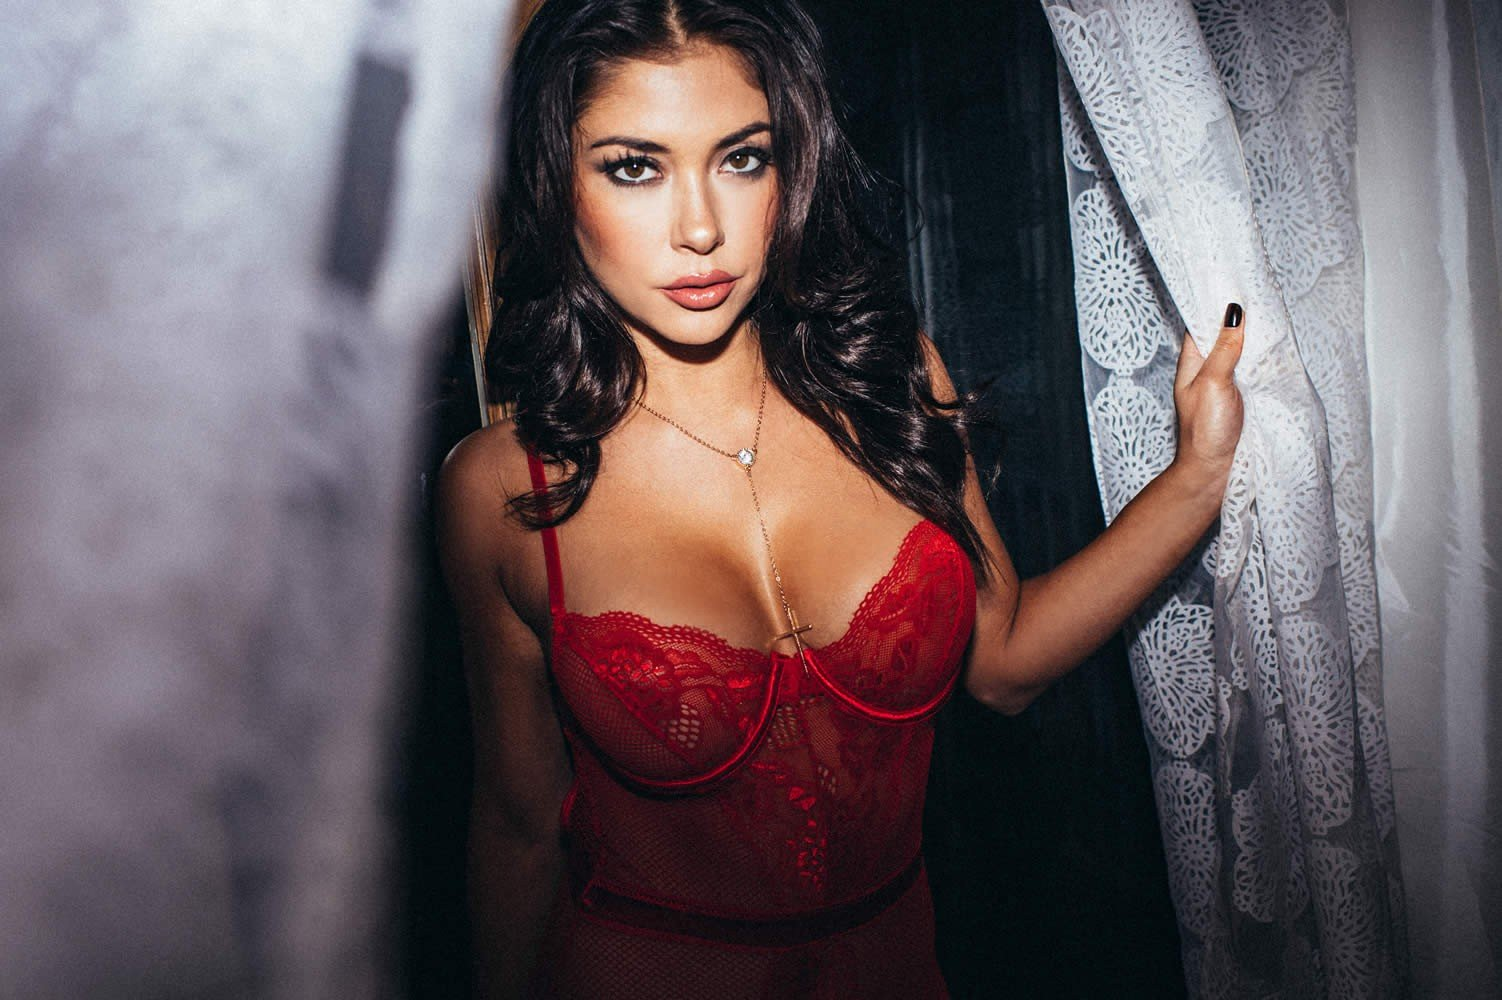 Topless goes arianny celeste